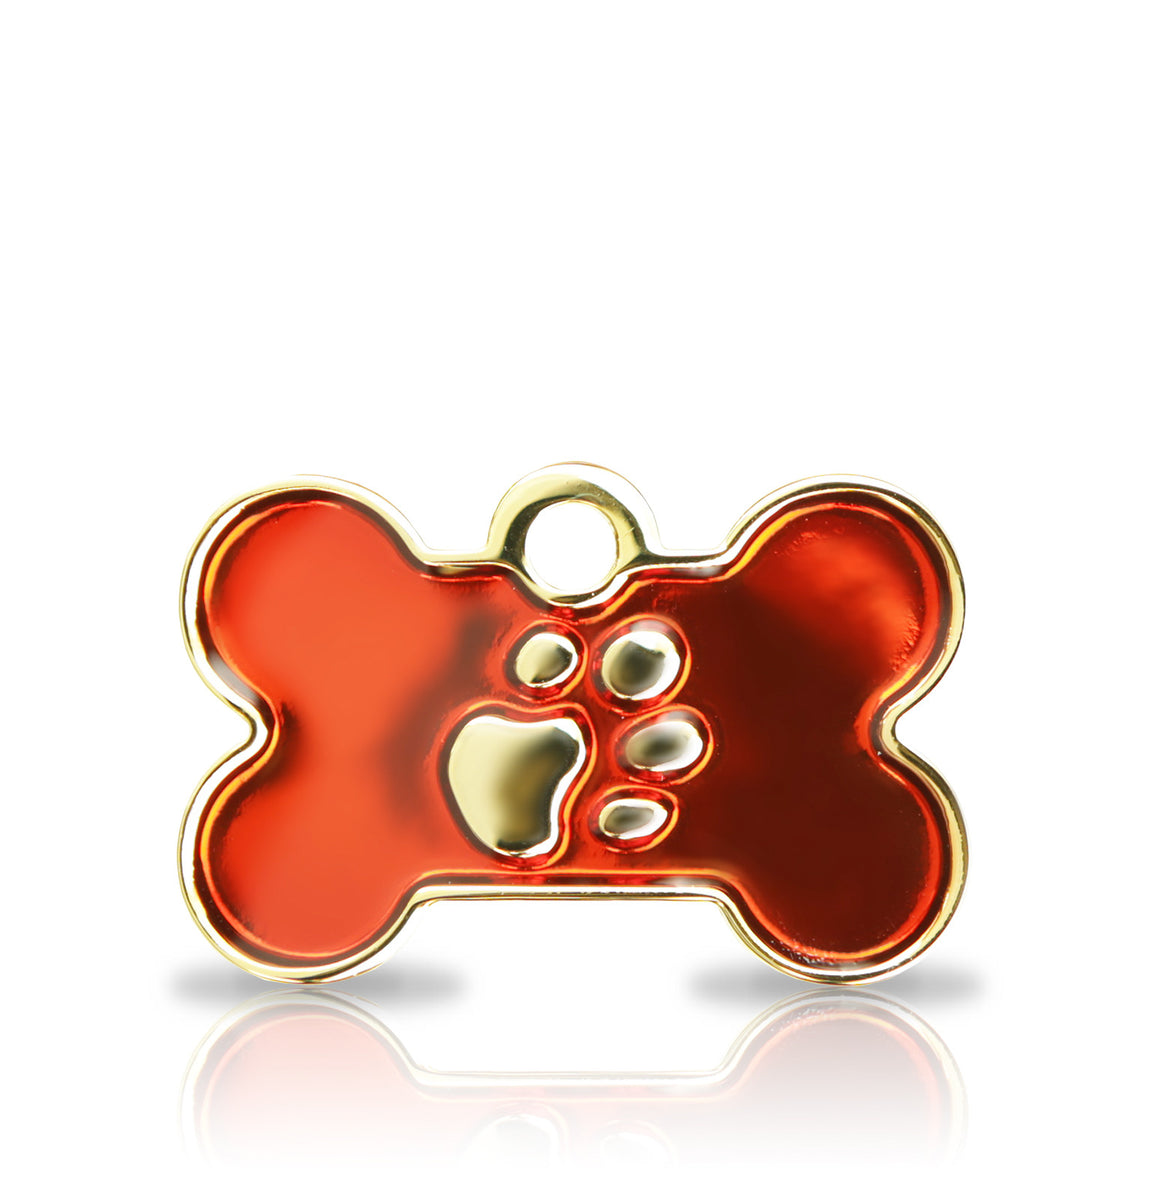 TaggIT Elegance Red & Gold Small Bone Dog ID Tag